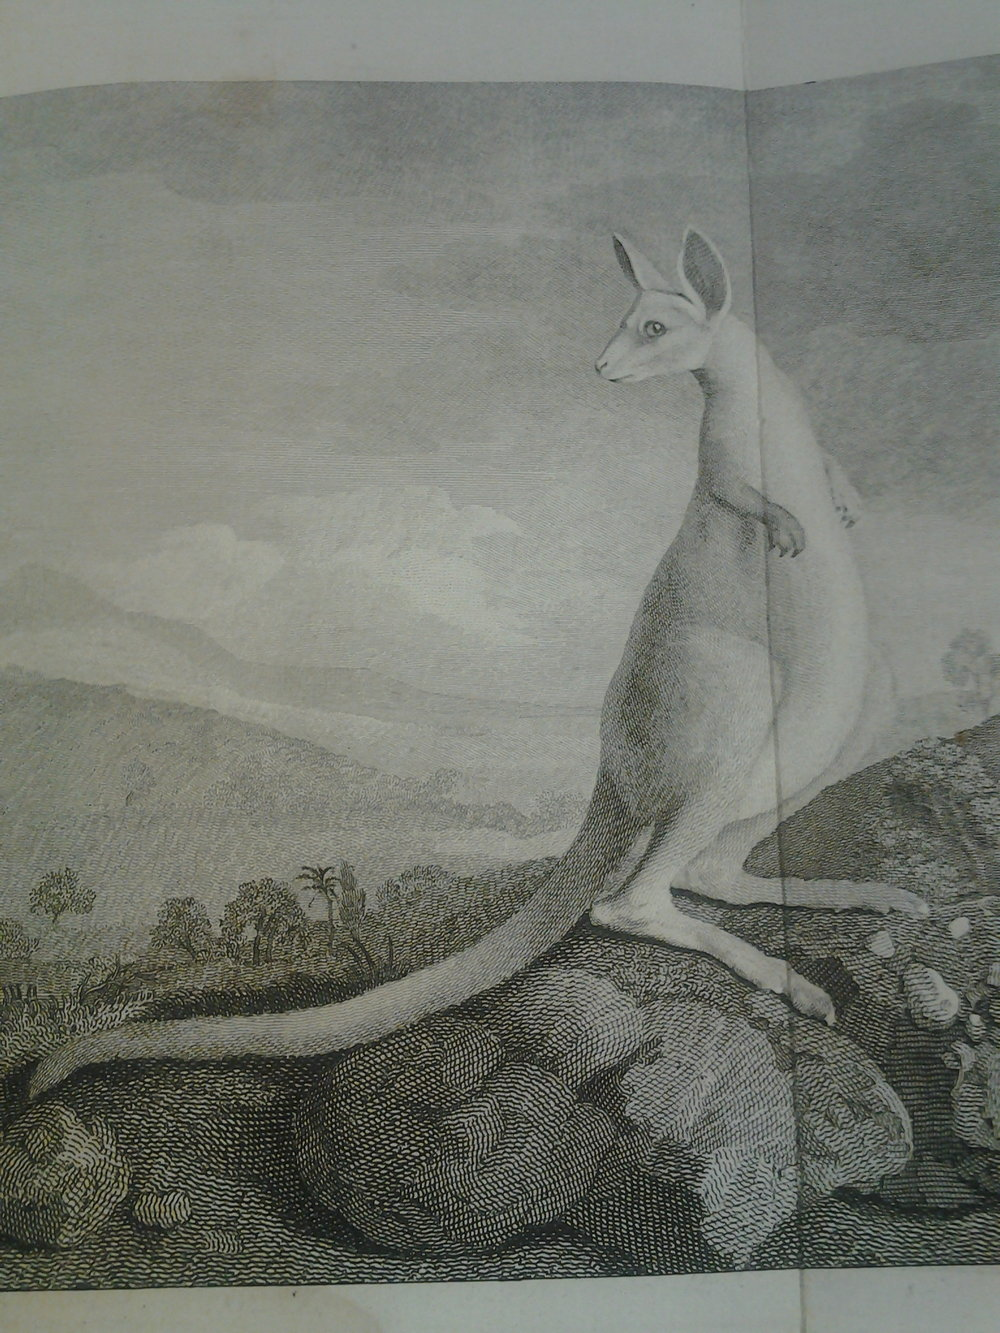 Cook, Banks, and Solander had a difficult time describing Australian wildlife.